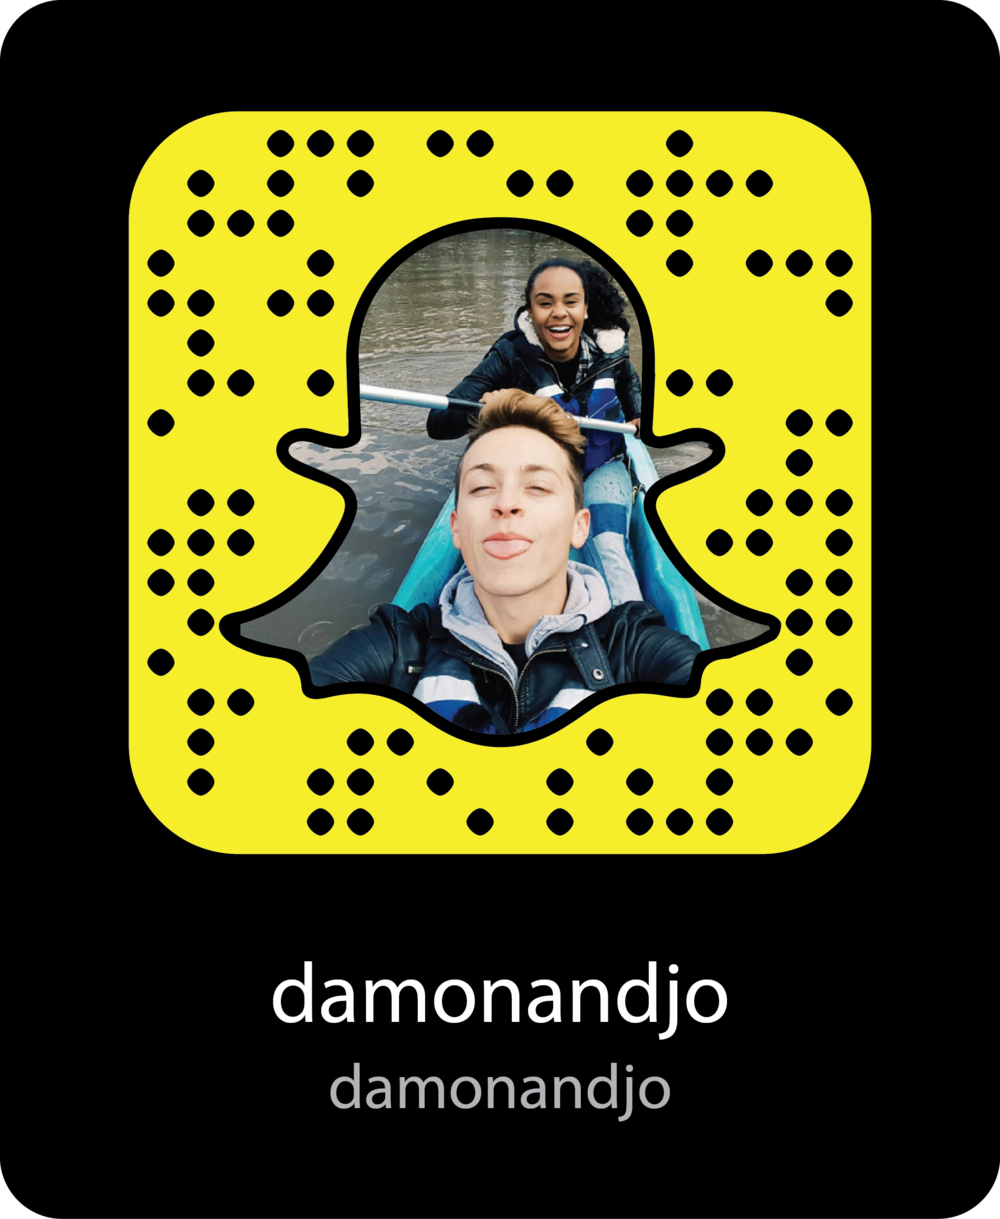 Damonandjo-Travel-snapchat-snapcode.png